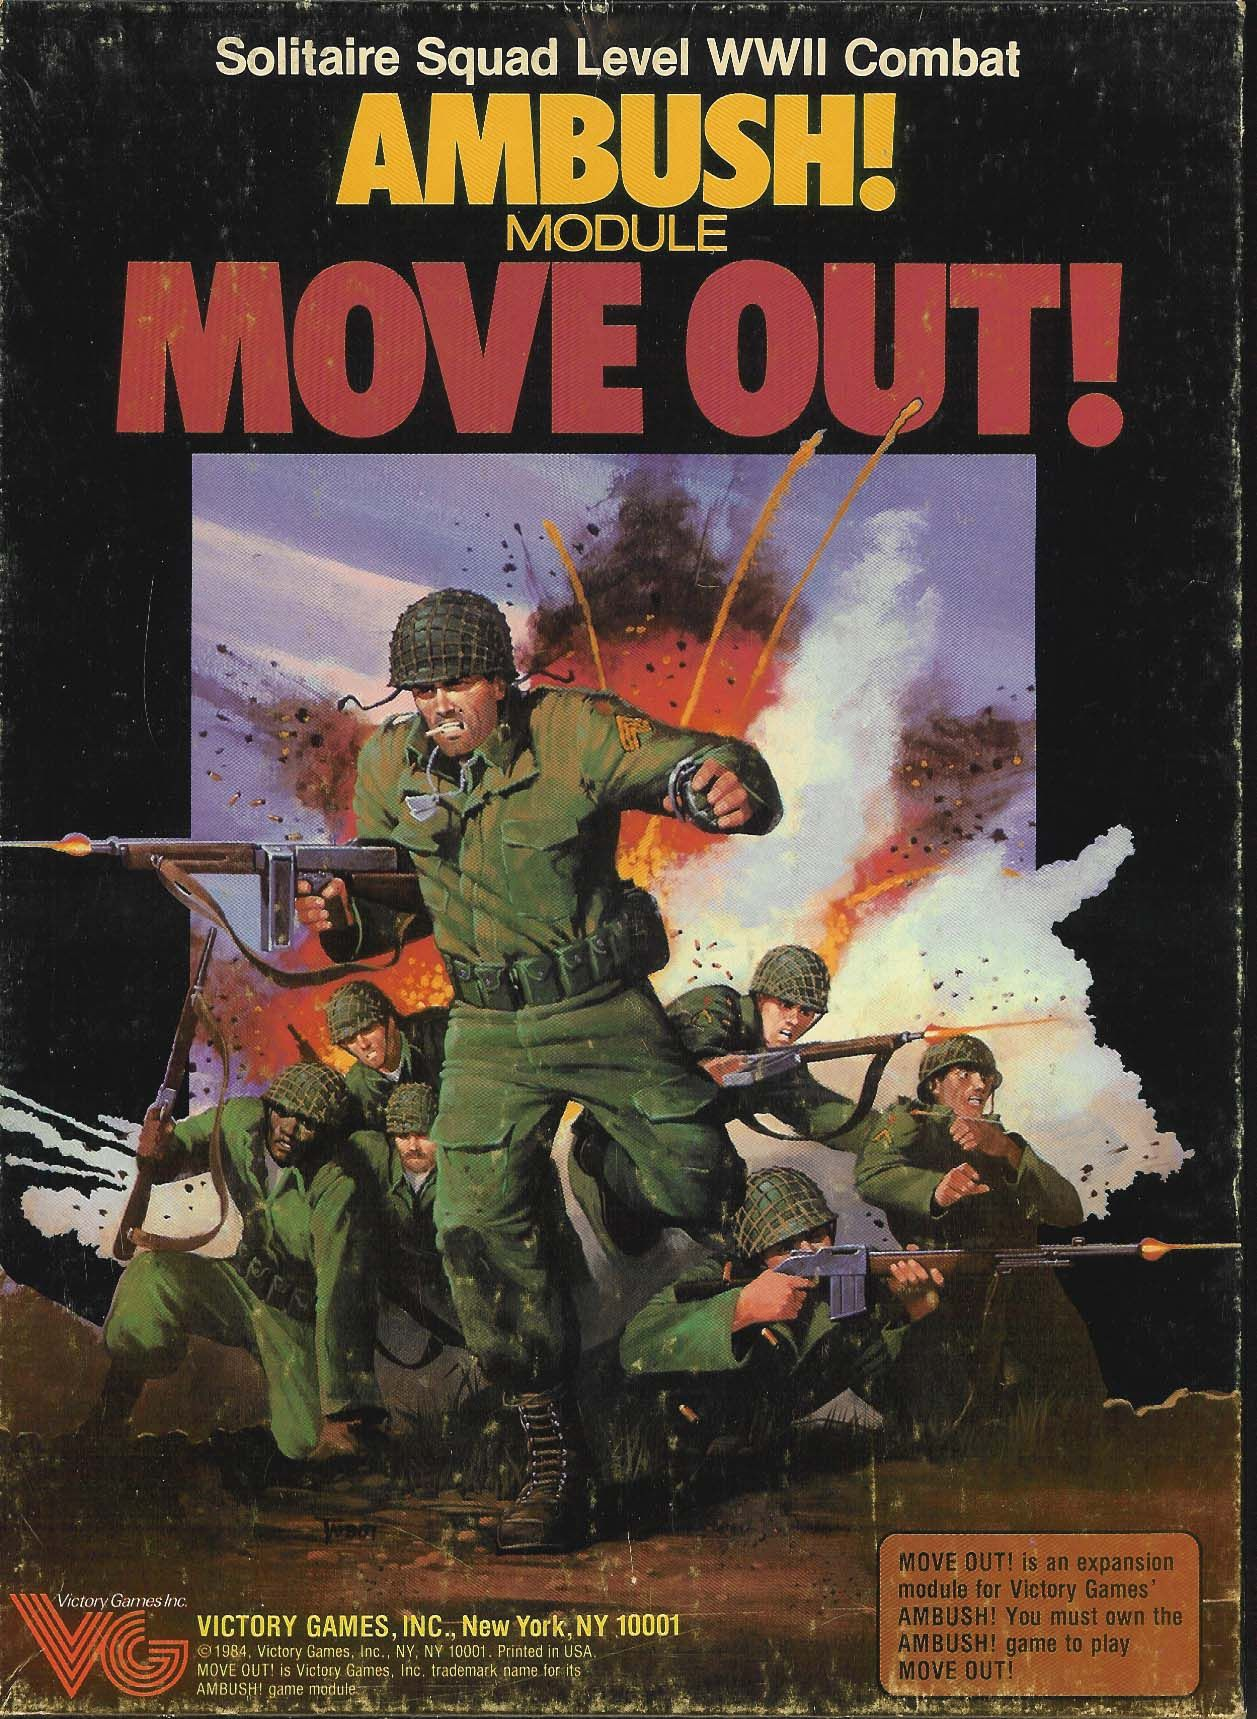 Ambush! Move Out! Moving out, Ambush, Moving